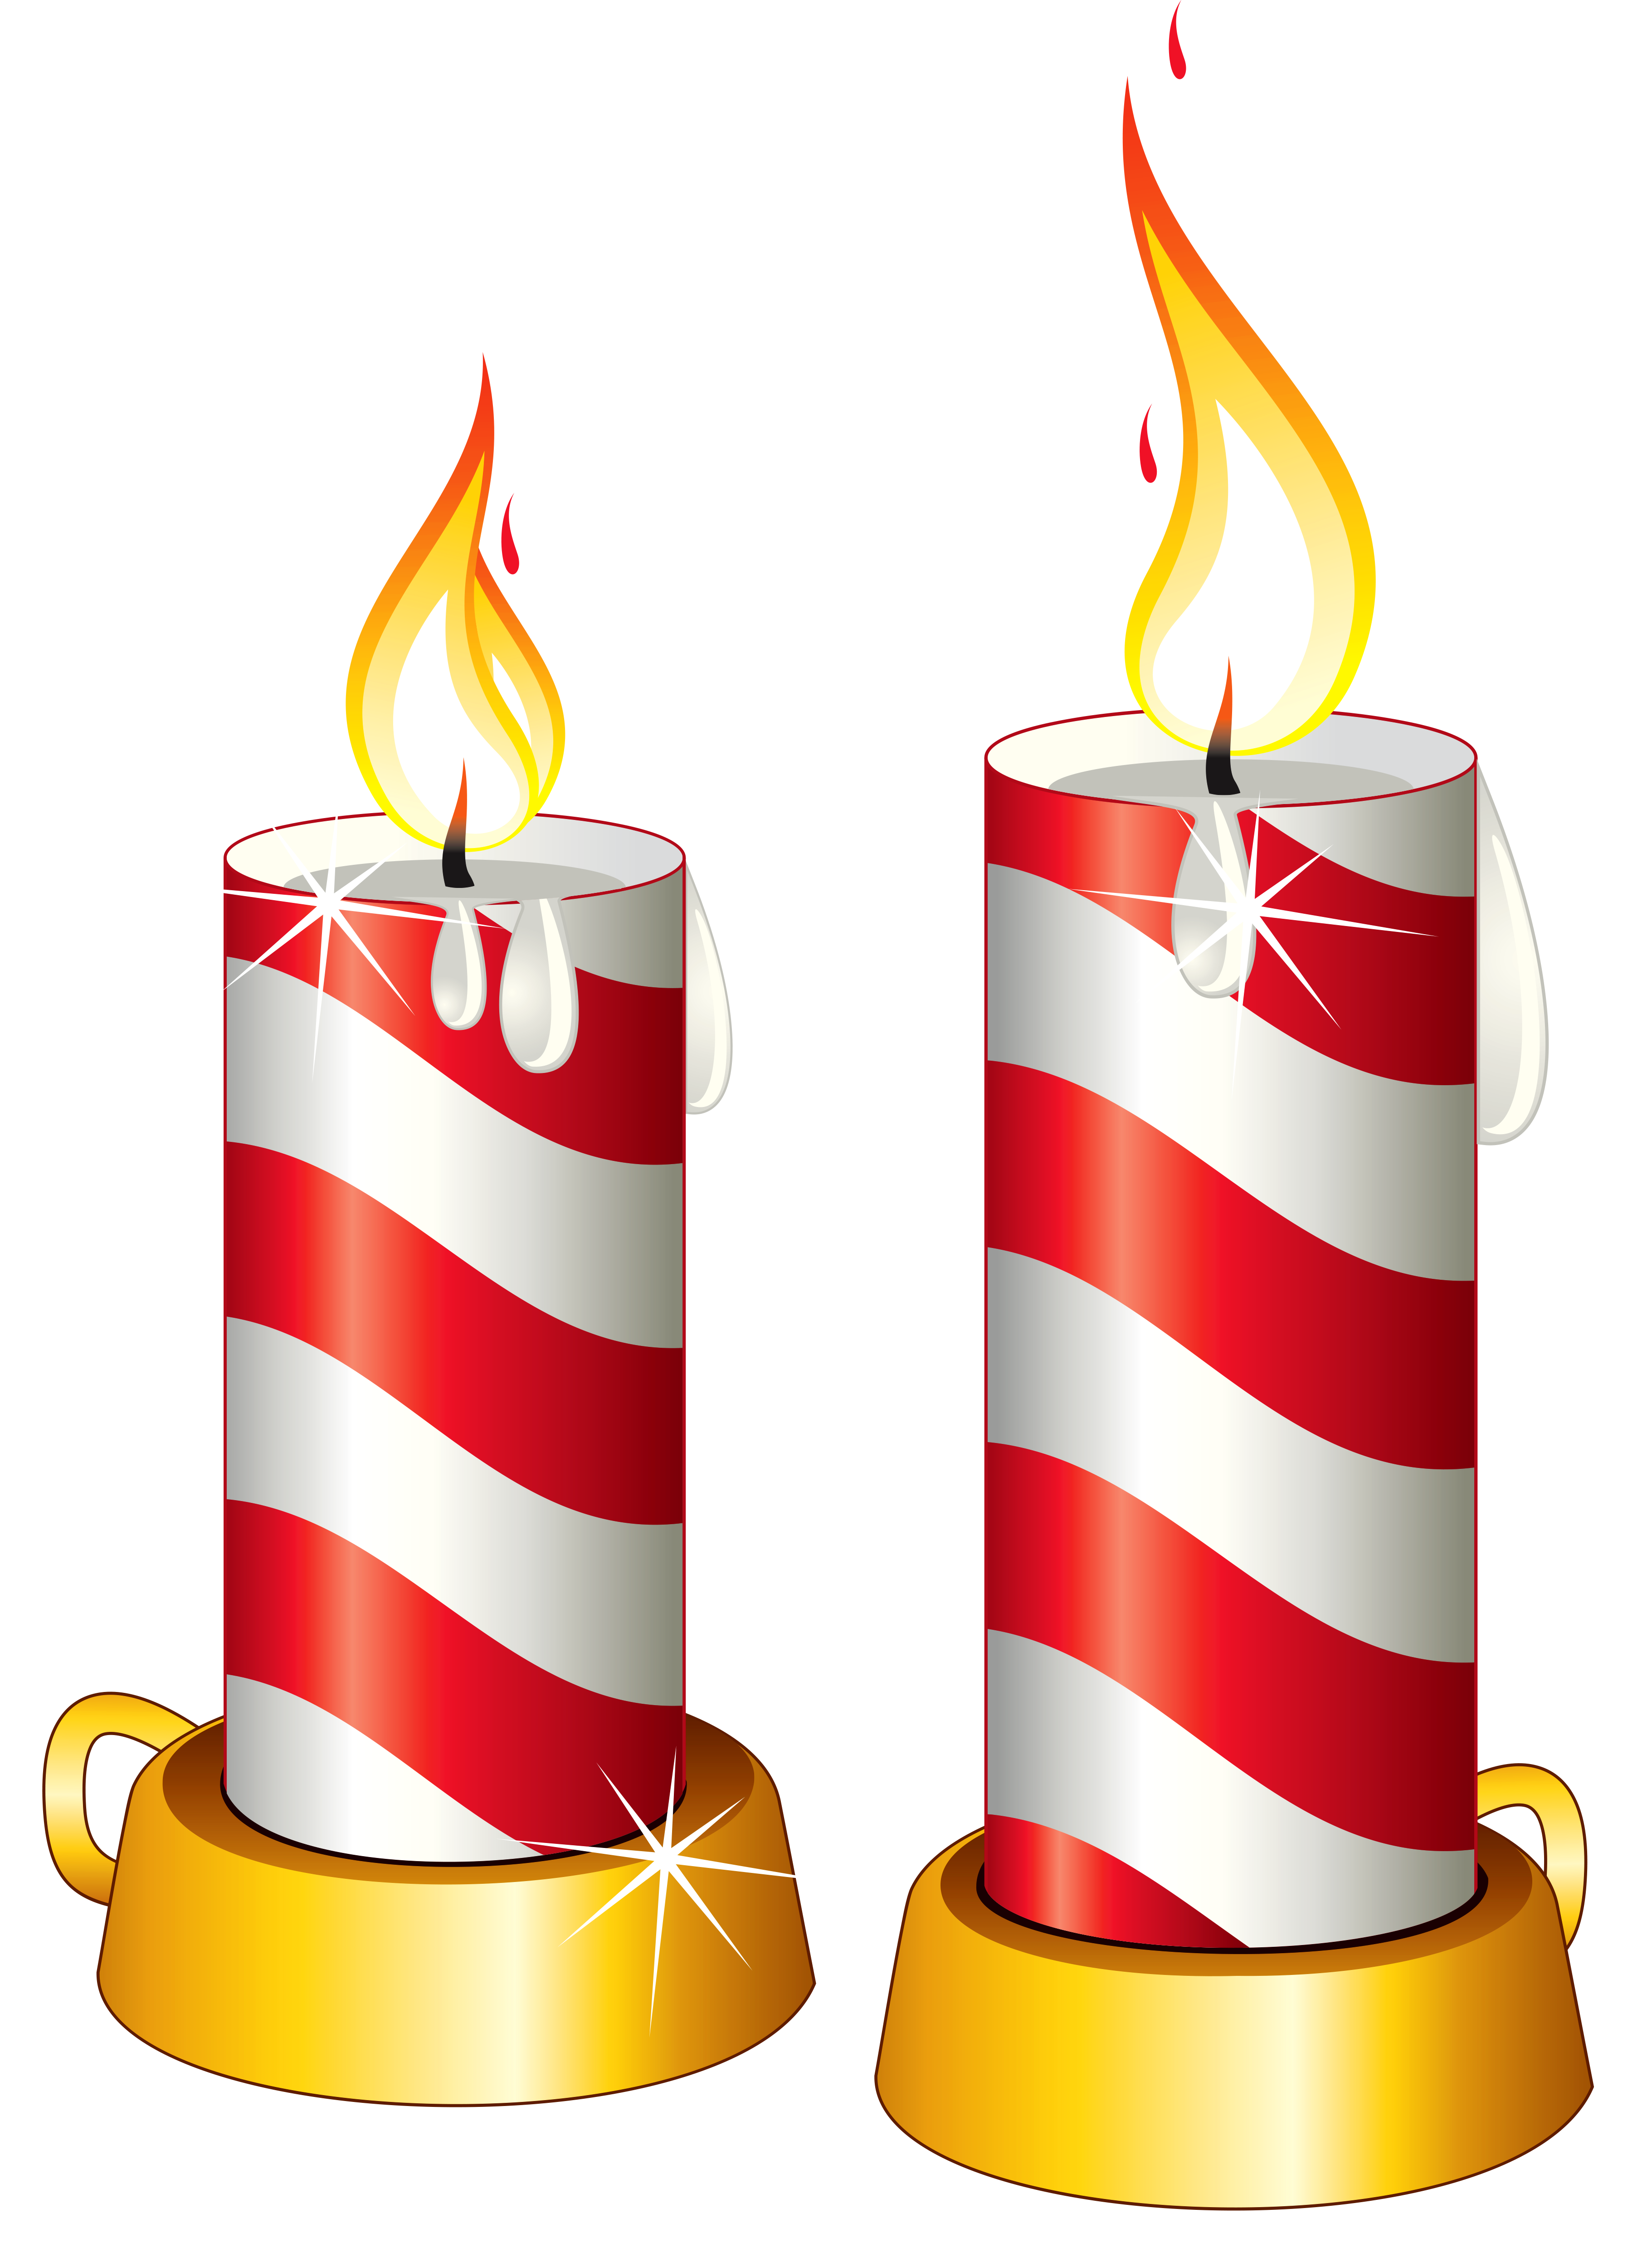 Candles clipart. Transparent christmas png gallery clip art black and white download